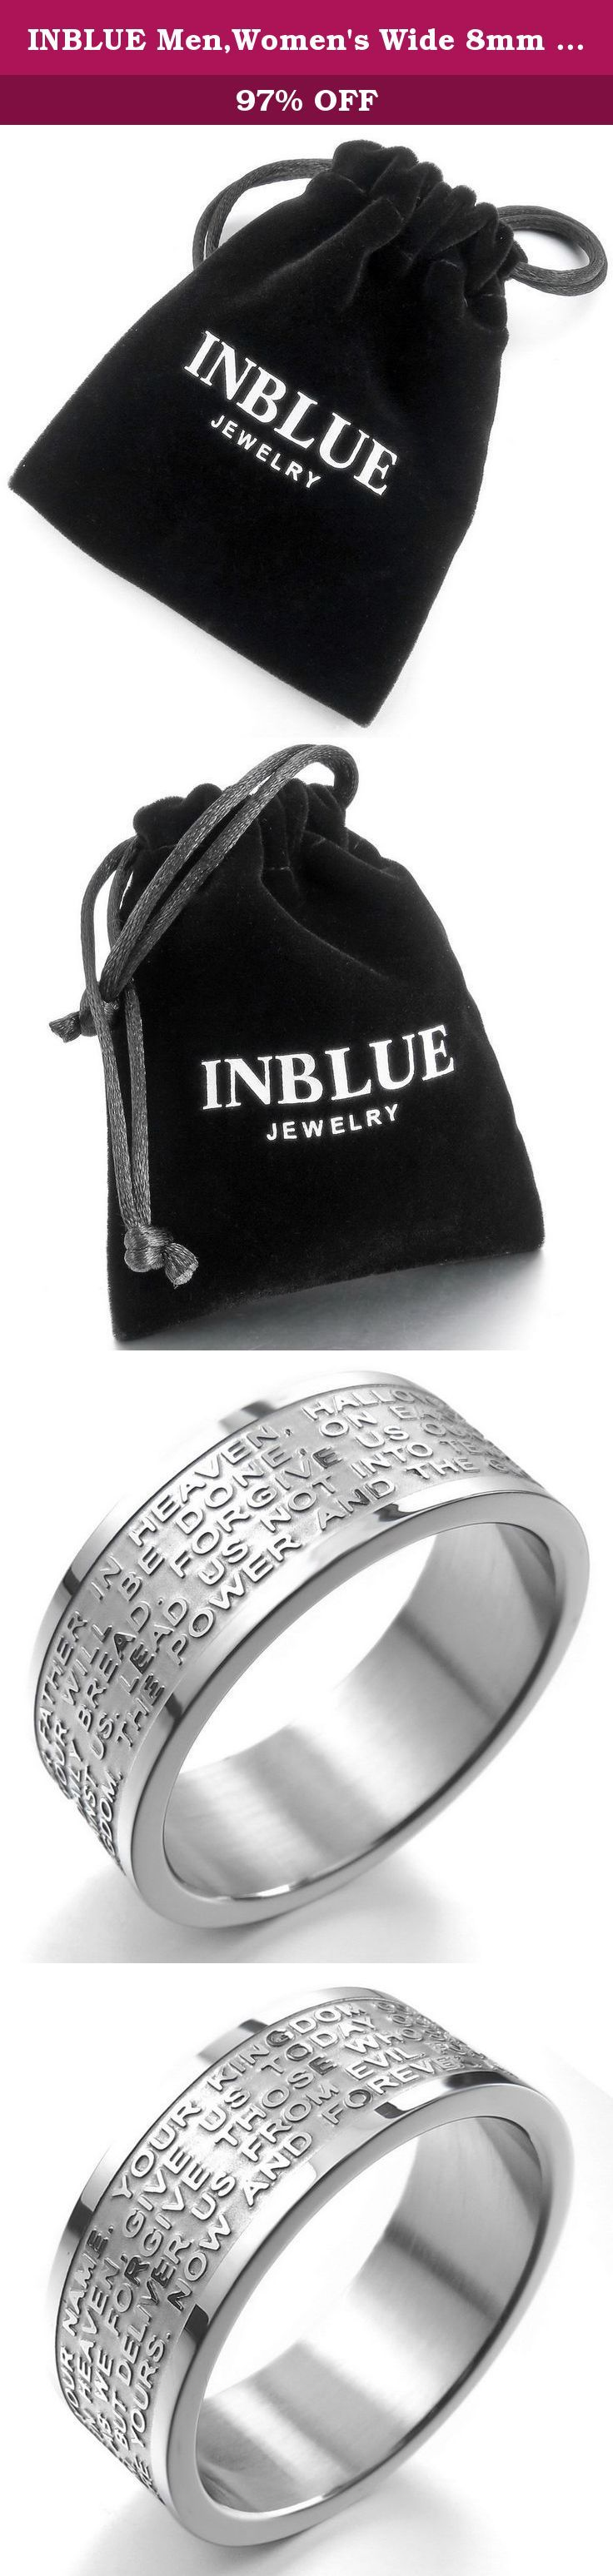 INBLUE Men,Women's Wide 8mm Stainless Steel Ring Band Silver Tone English Bible Lords Prayer Cross Size9. INBLUE - High quality Jewelry Discover the INBLUE Collection of jewelry. The selection of high-quality jewelry featured in the INBLUE Collection offers Great values at affordable Price, they mainly made of high quality Stainless Steel, Tungsten, Silver and Leather. Find a special gift for a loved one or a beautiful piece that complements your personal style with jewelry from the…